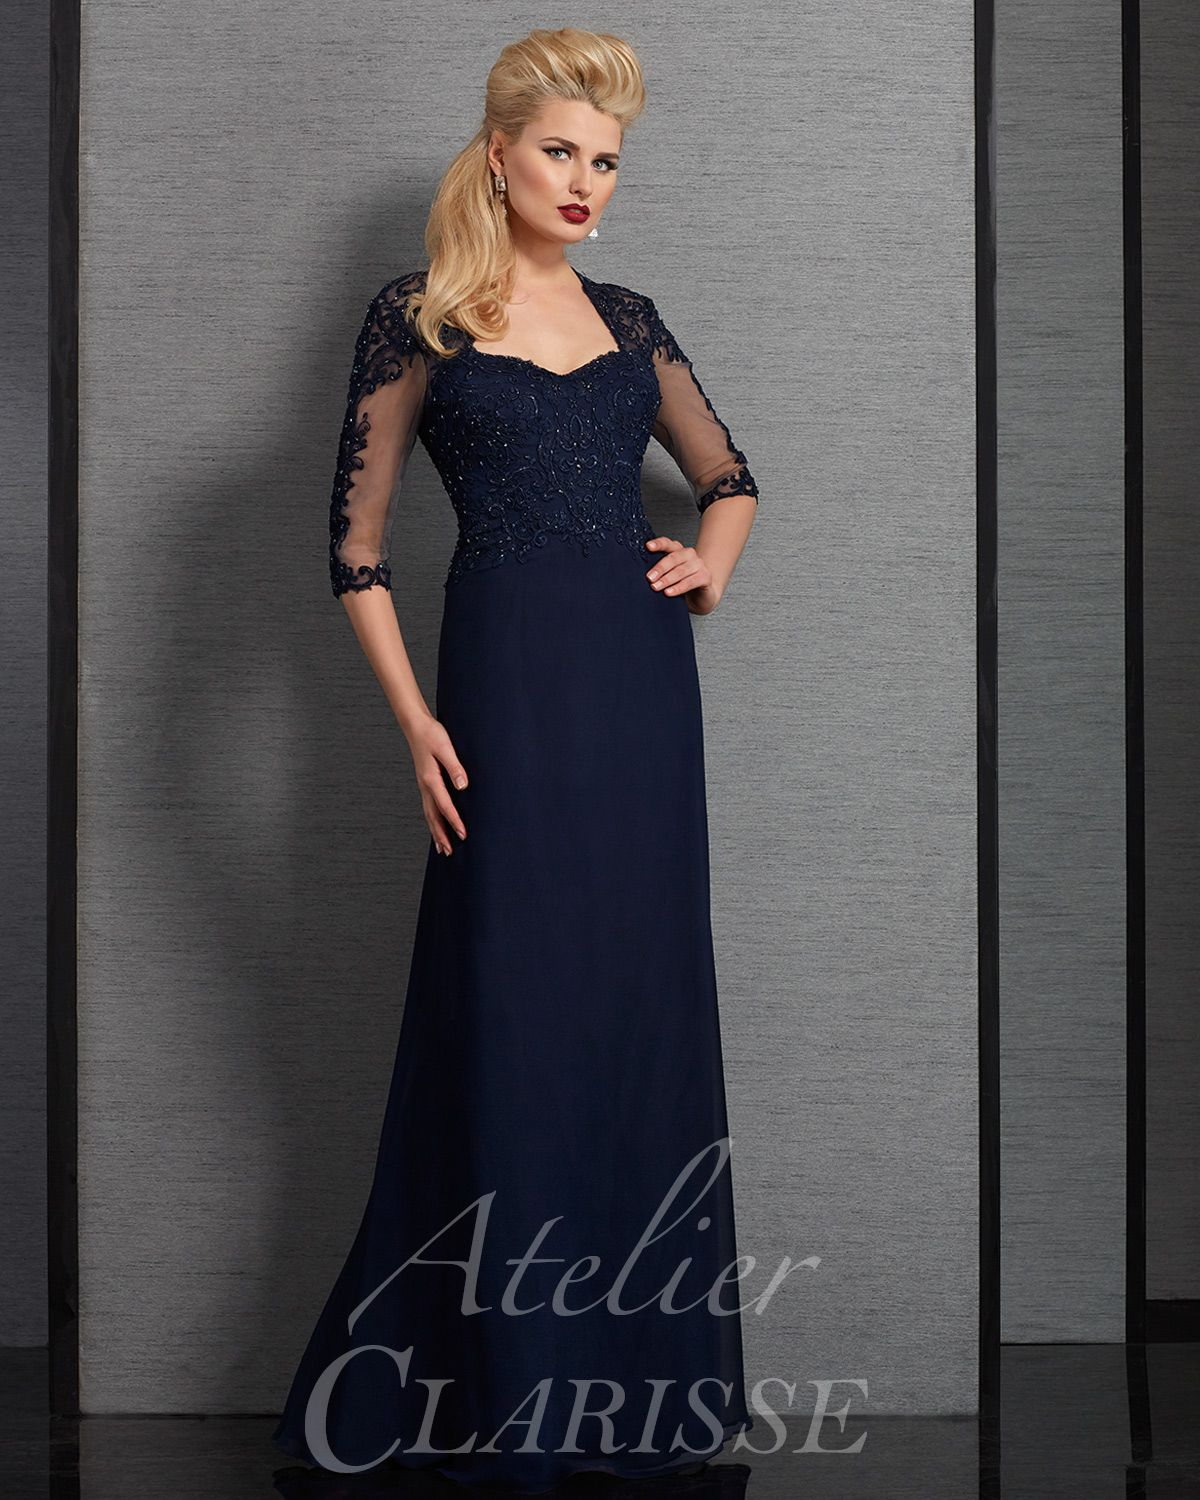 Atelier Clarisse A Line Special Occasion Dress 6328